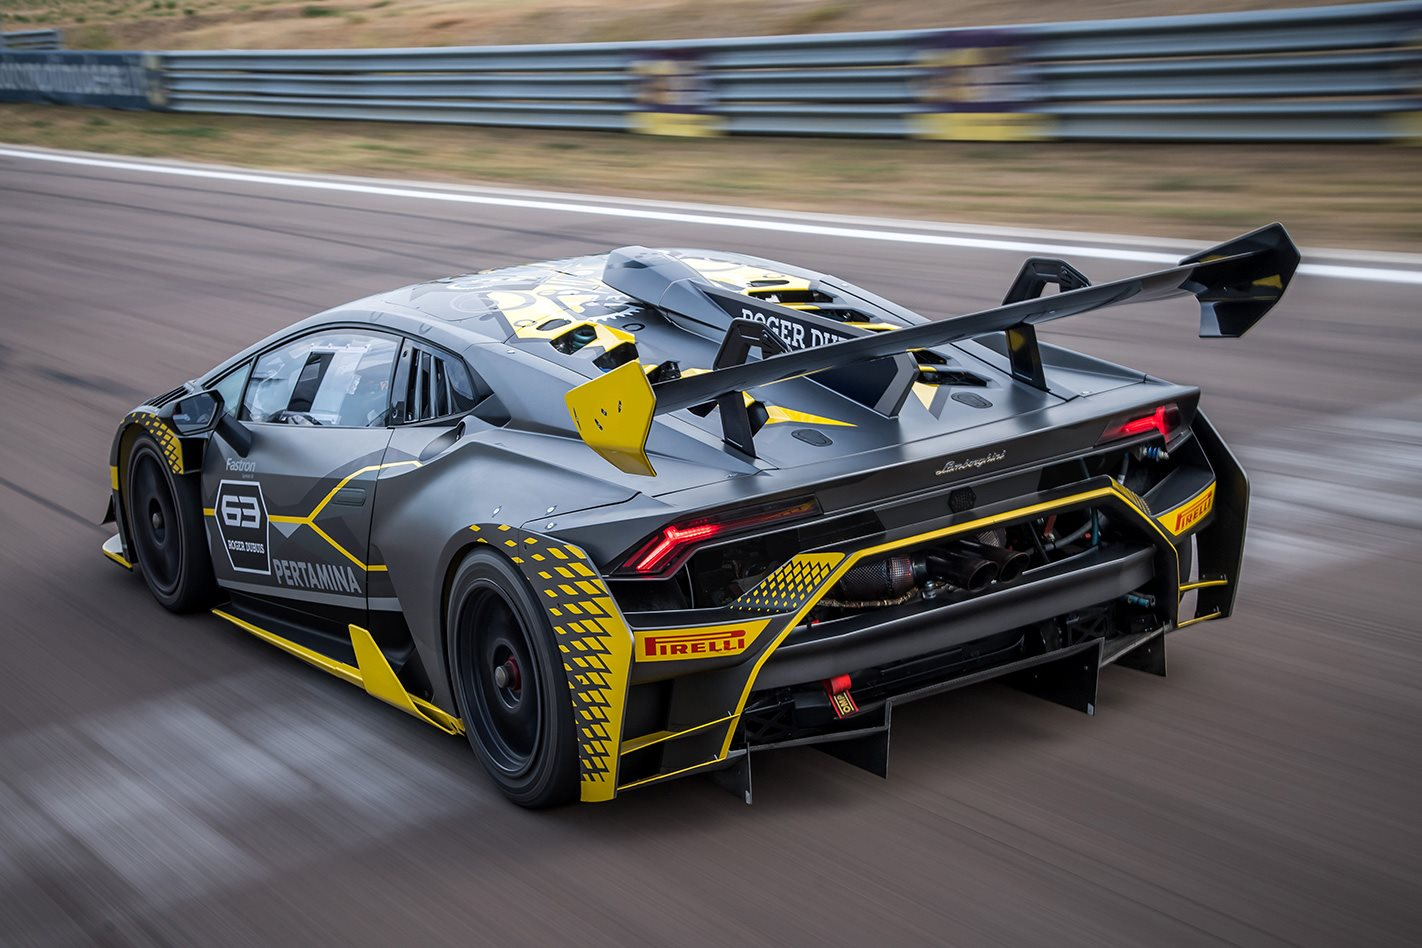 a3e7fb2db4f New Lamborghini Huracán Super Trofeo race car unveiled